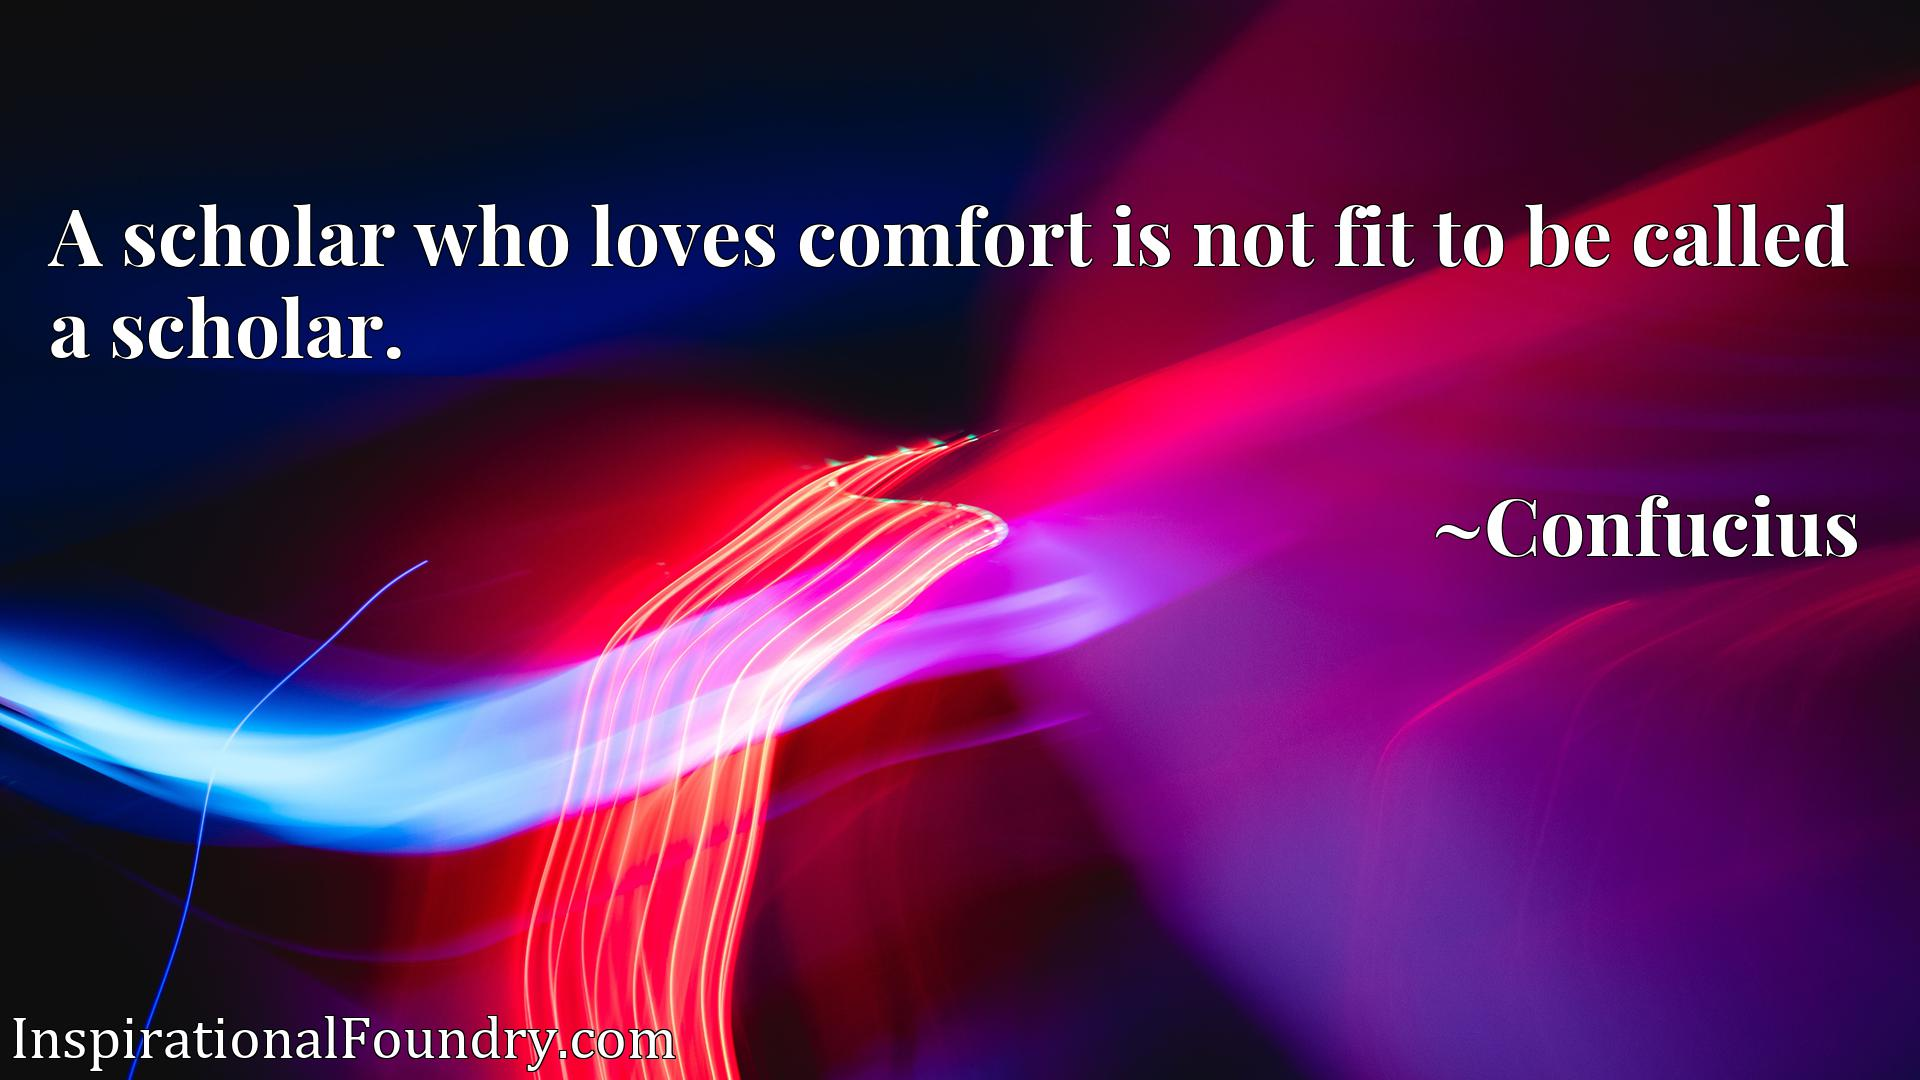 A scholar who loves comfort is not fit to be called a scholar.